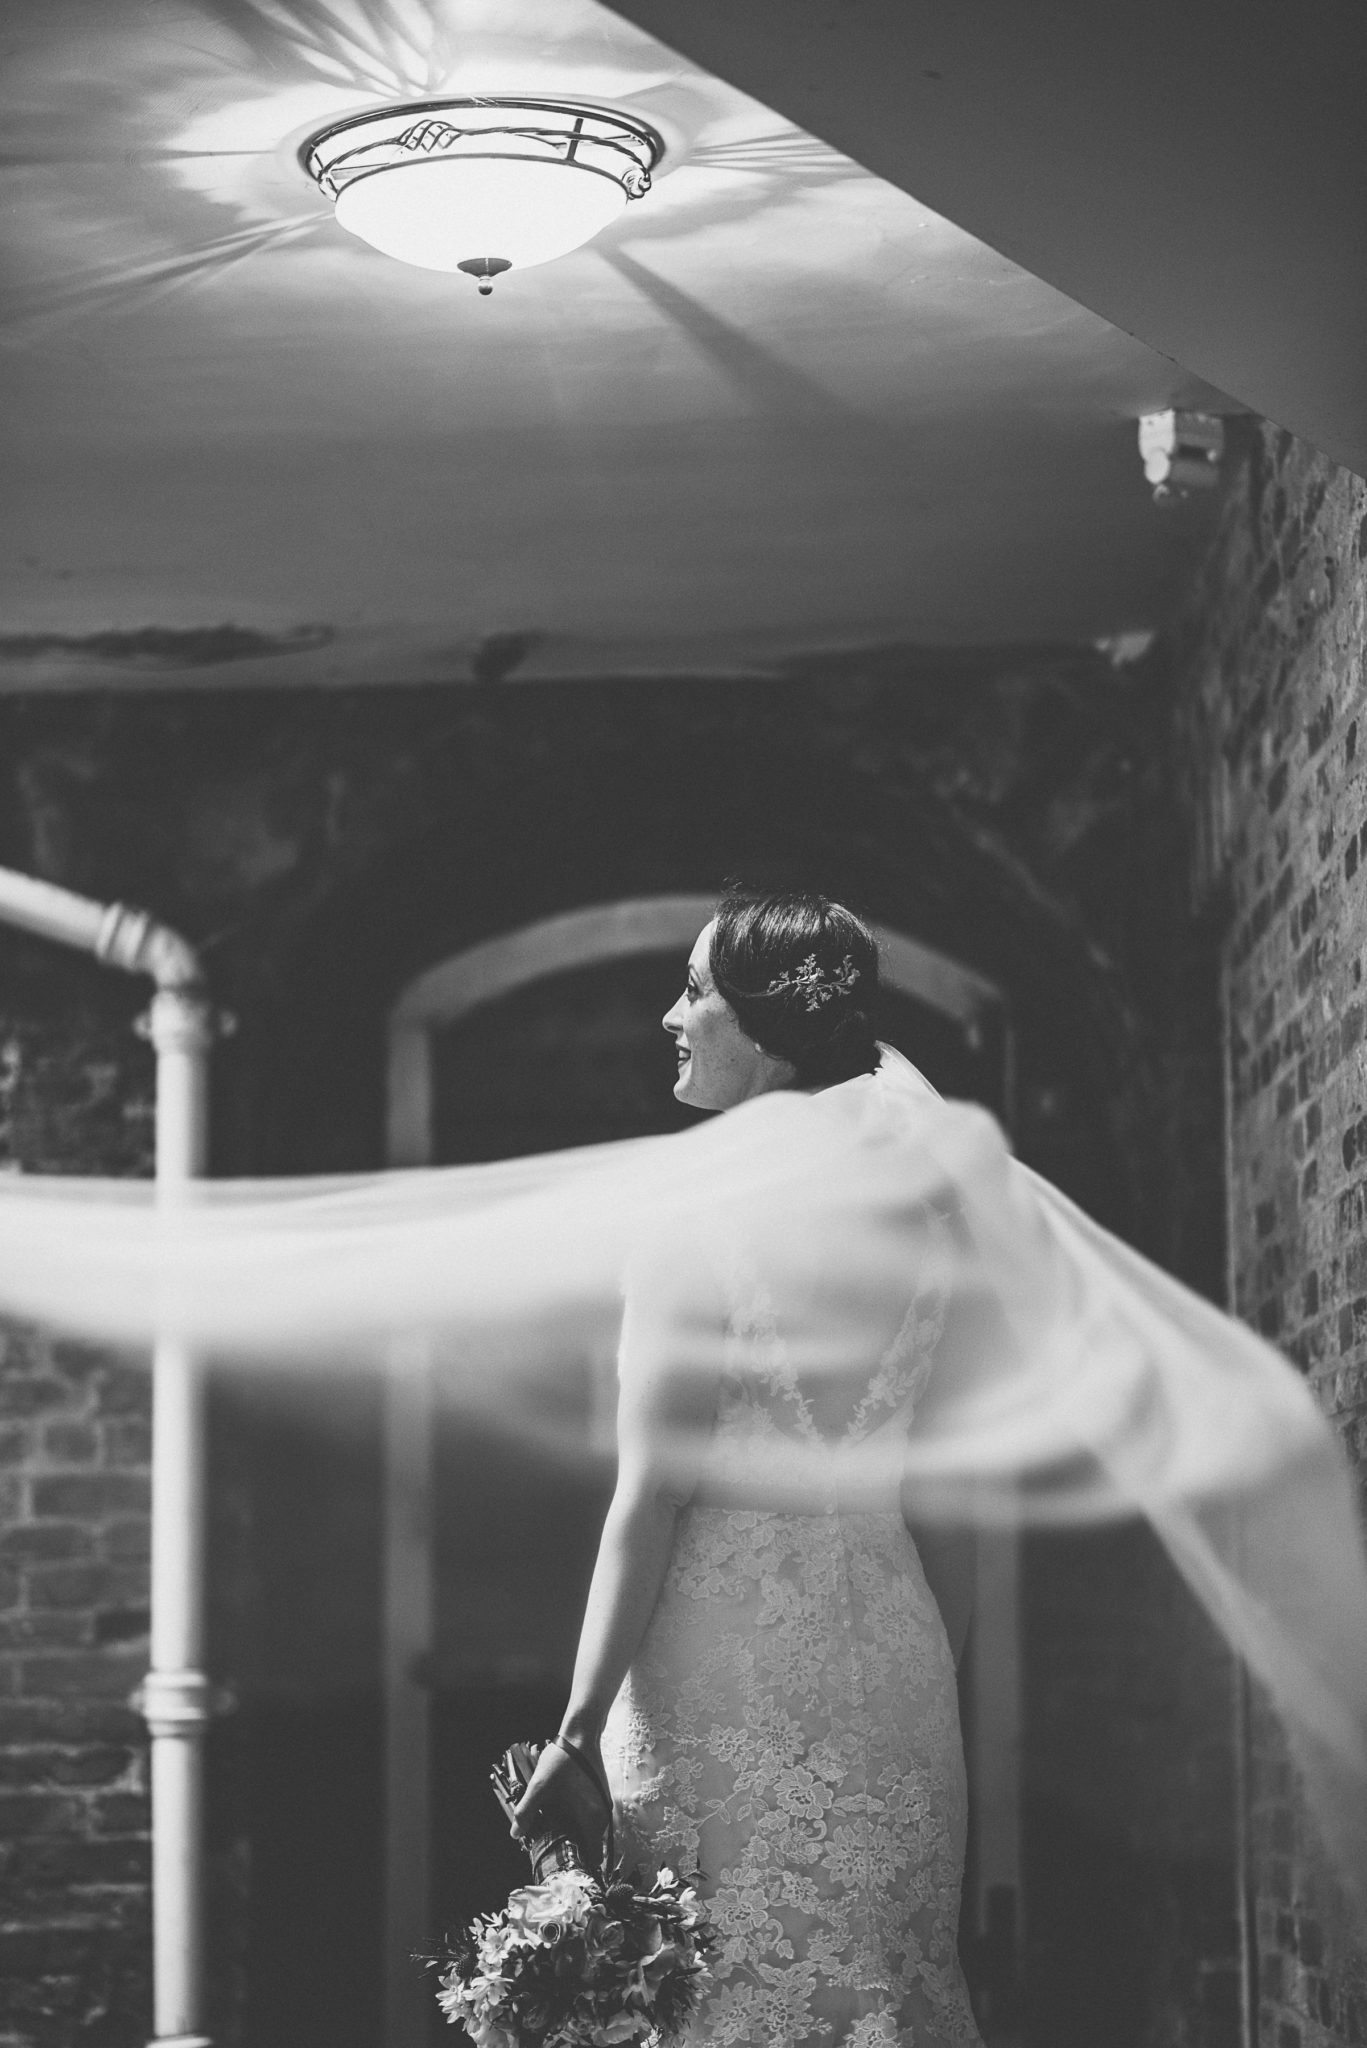 Black and White photo of the bride standing below a light with her bridal veil blowing in the wind